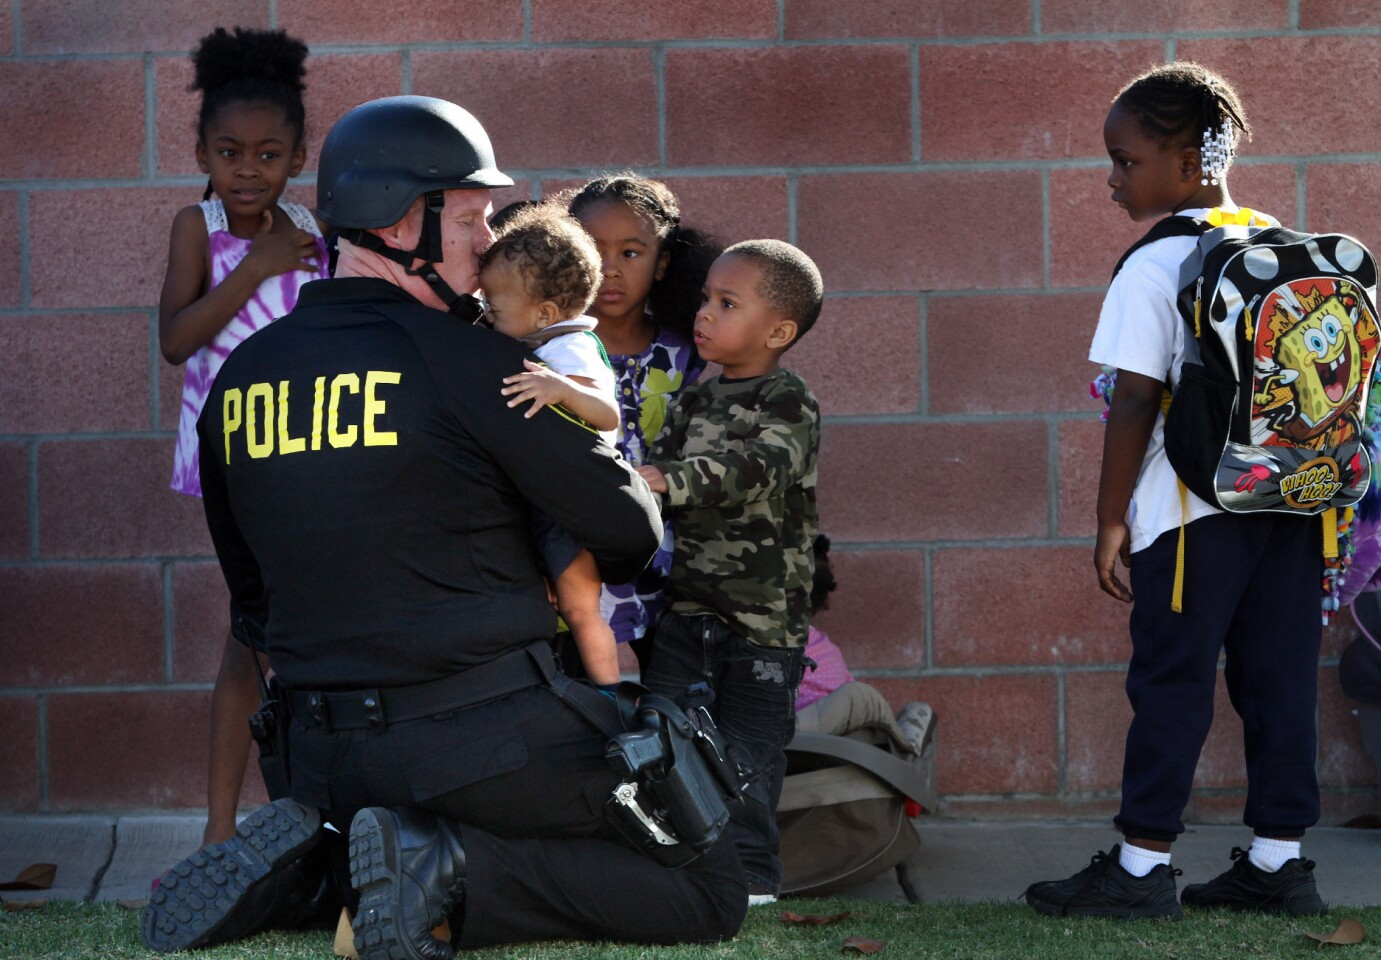 Inglewood police officer Joey Zeller kisses the head of a toddler he led to safety with a group of others from the neighborhood where two fellow officers were injured.